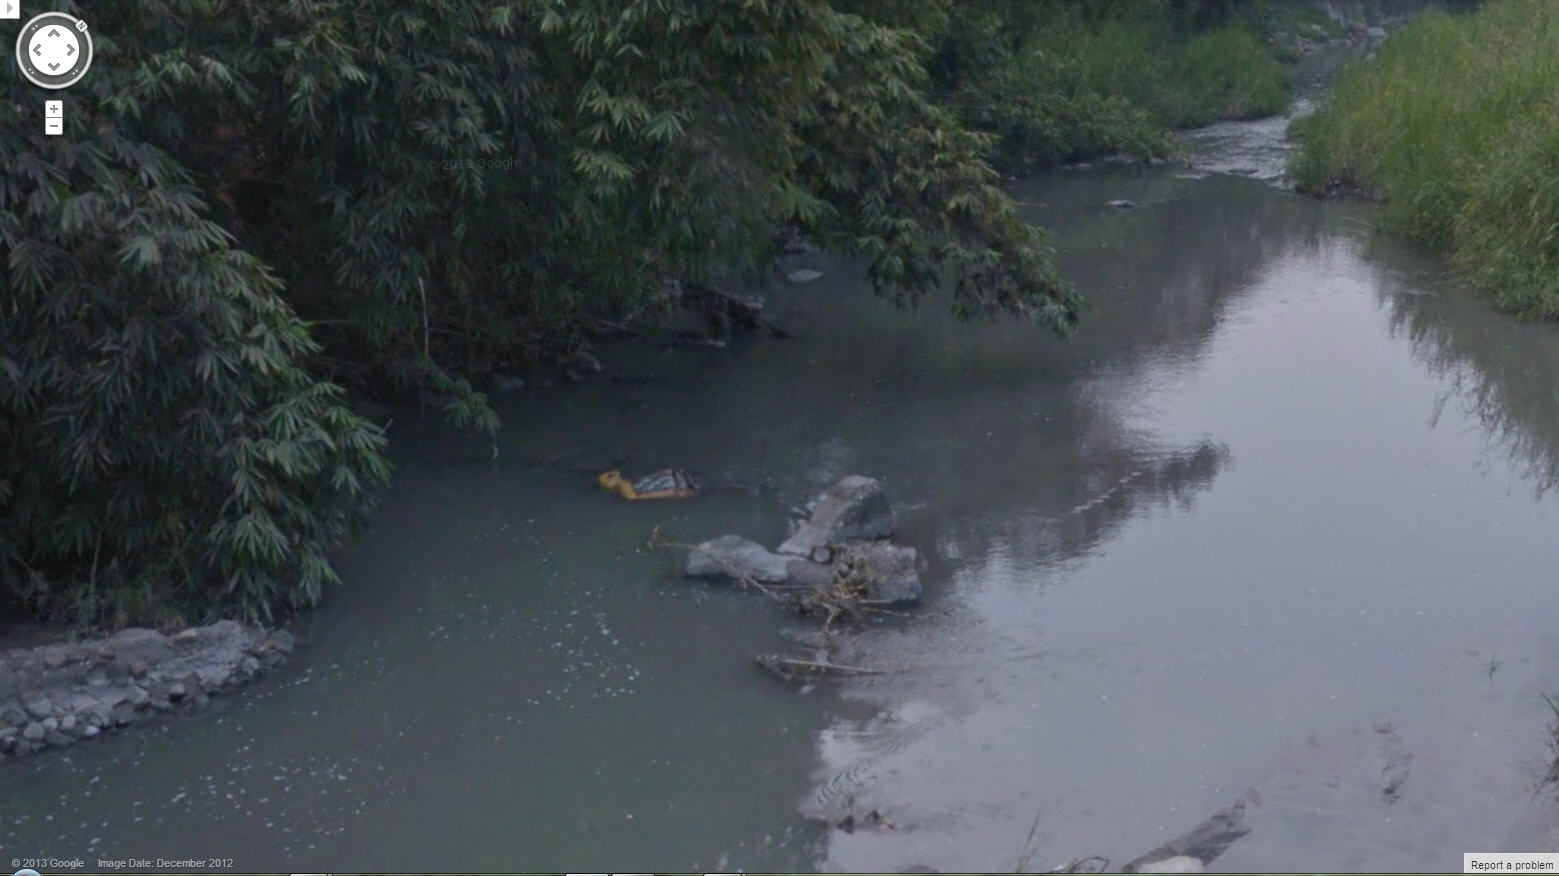 Google Street View Discovers a Body Floating in a Taiwan River